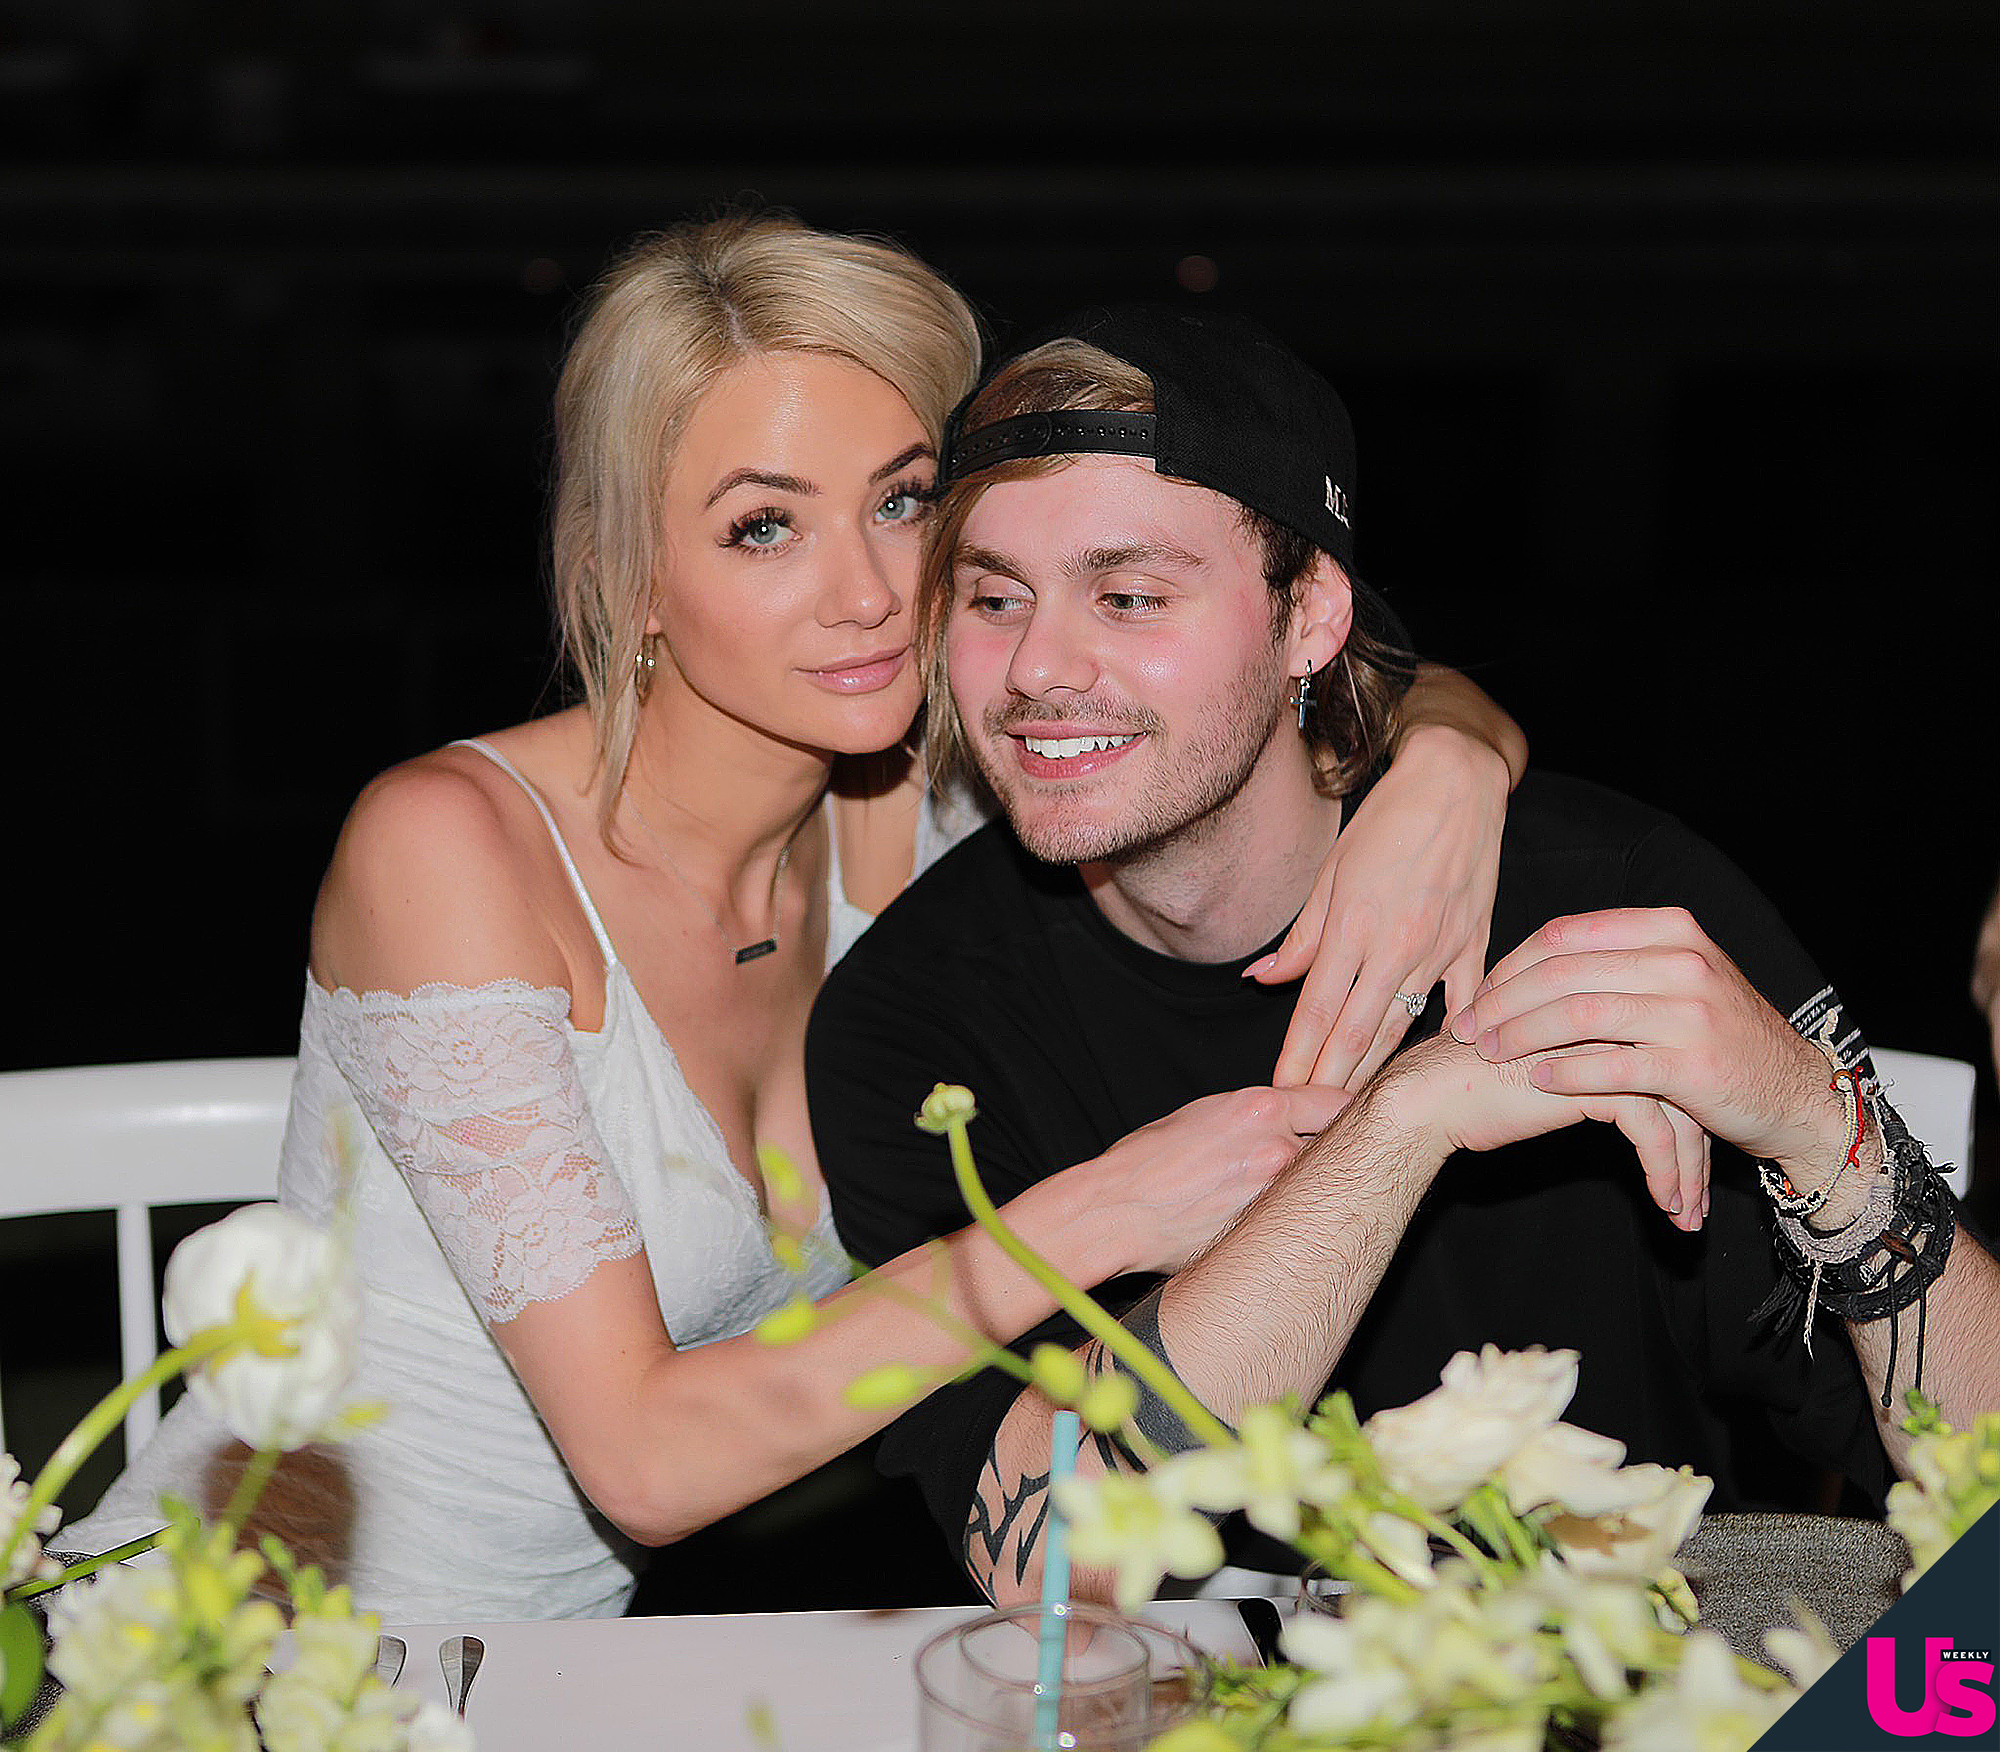 de18fe816c8a 5 Seconds of Summer's Michael Clifford Engaged to Crystal Leigh